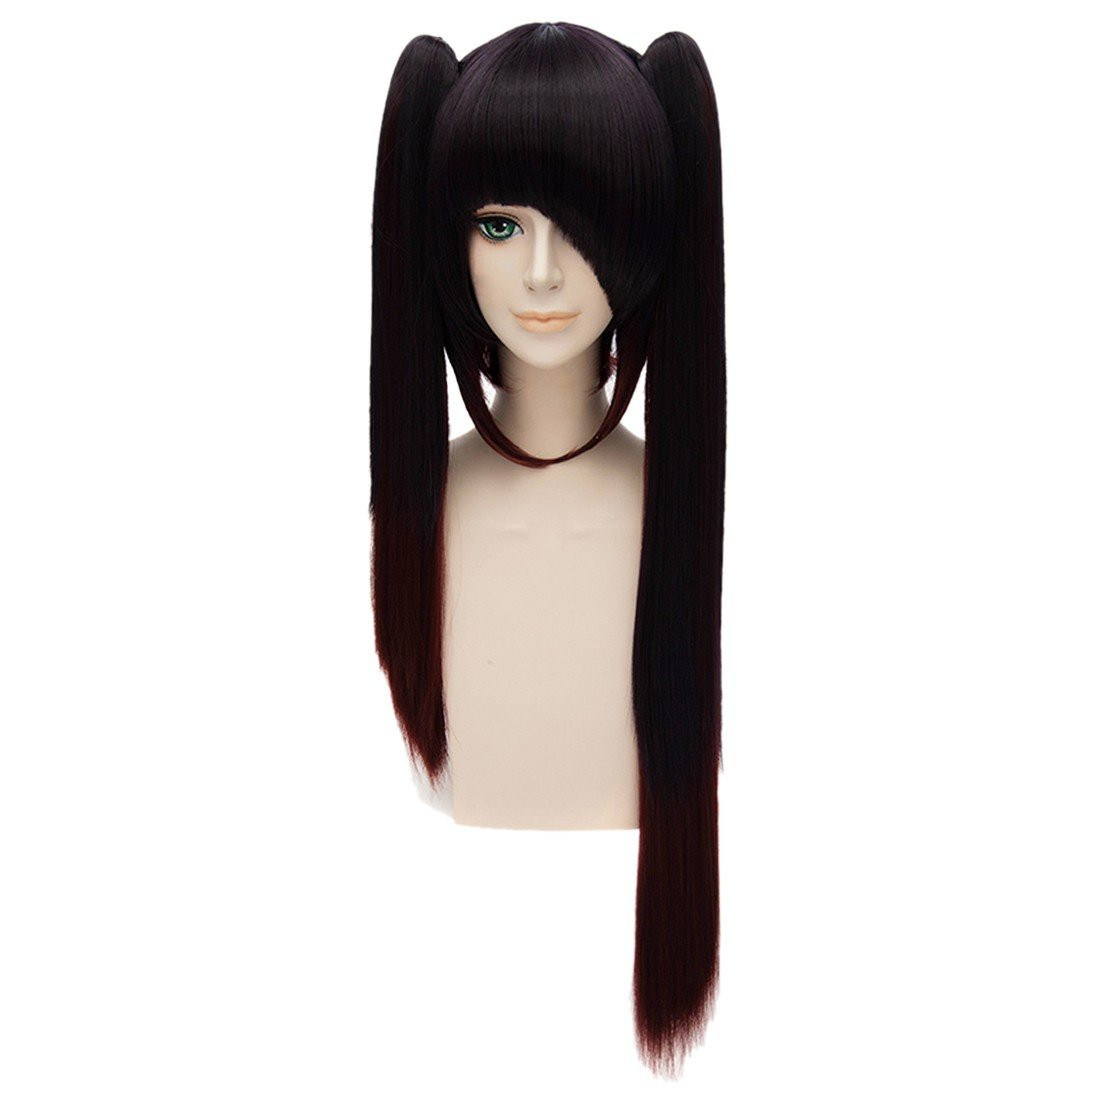 Tokisaki Kurumi Cosplay Anime Women Long Straight Bangs Ponytail Women Hair Wigs QIYUN.Z W111A1140/1ONE